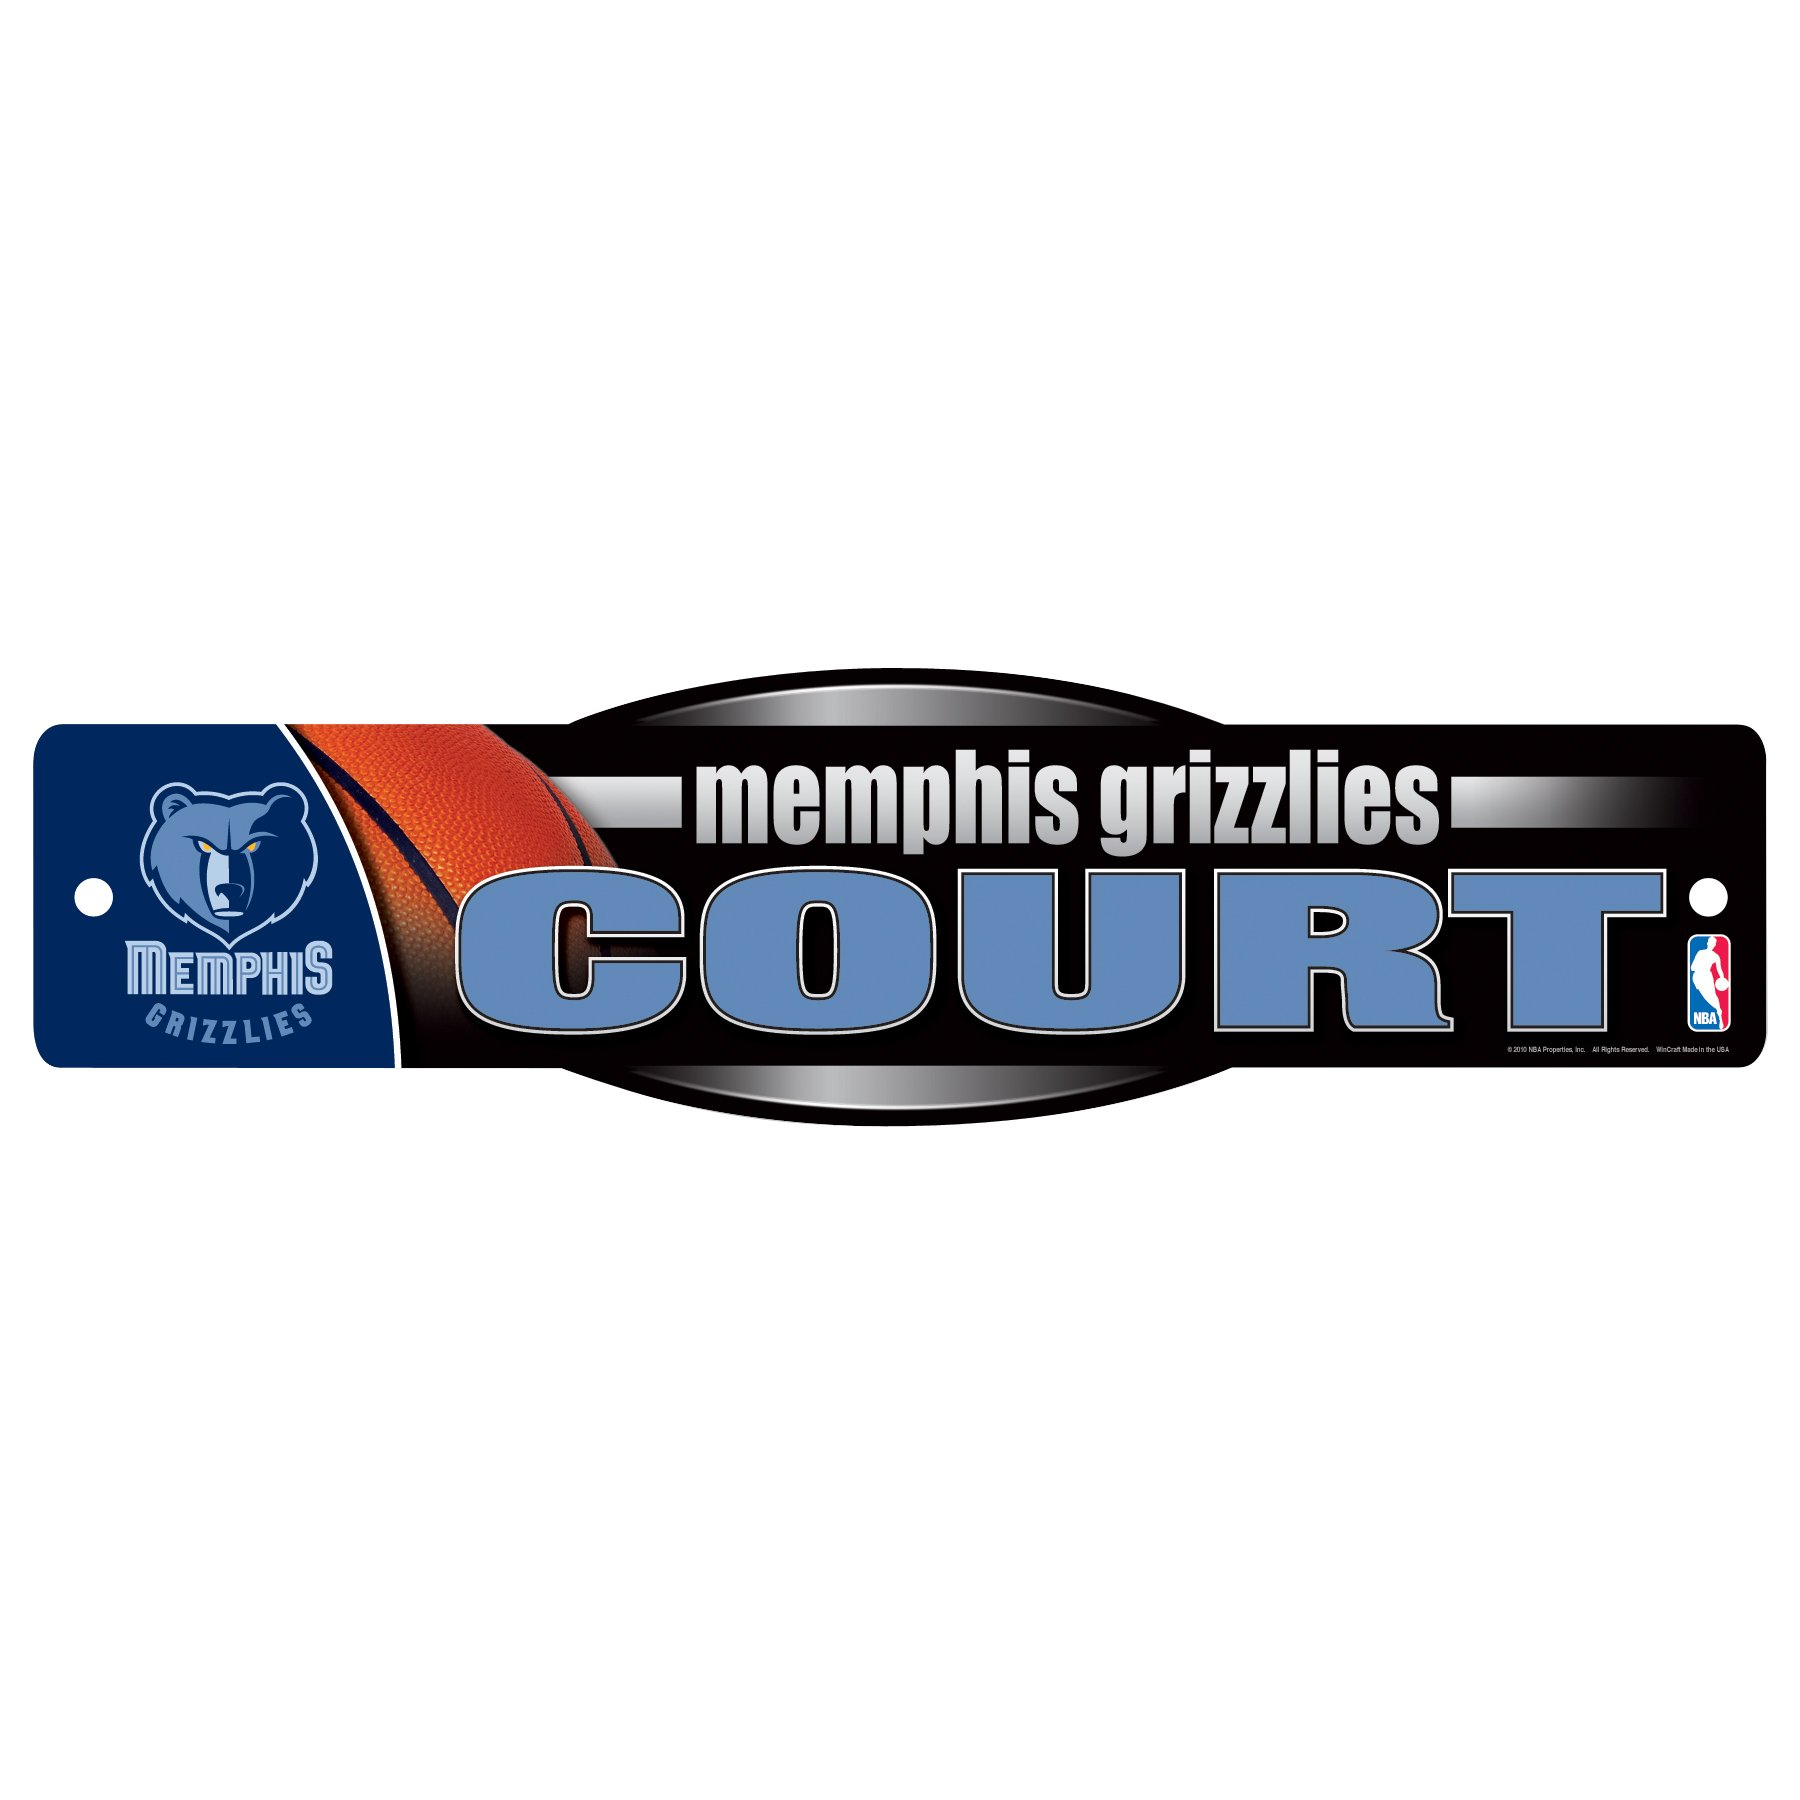 WinCraft NBA Memphis Grizzlies Sign, 4.5 x 17-Inch by WinCraft